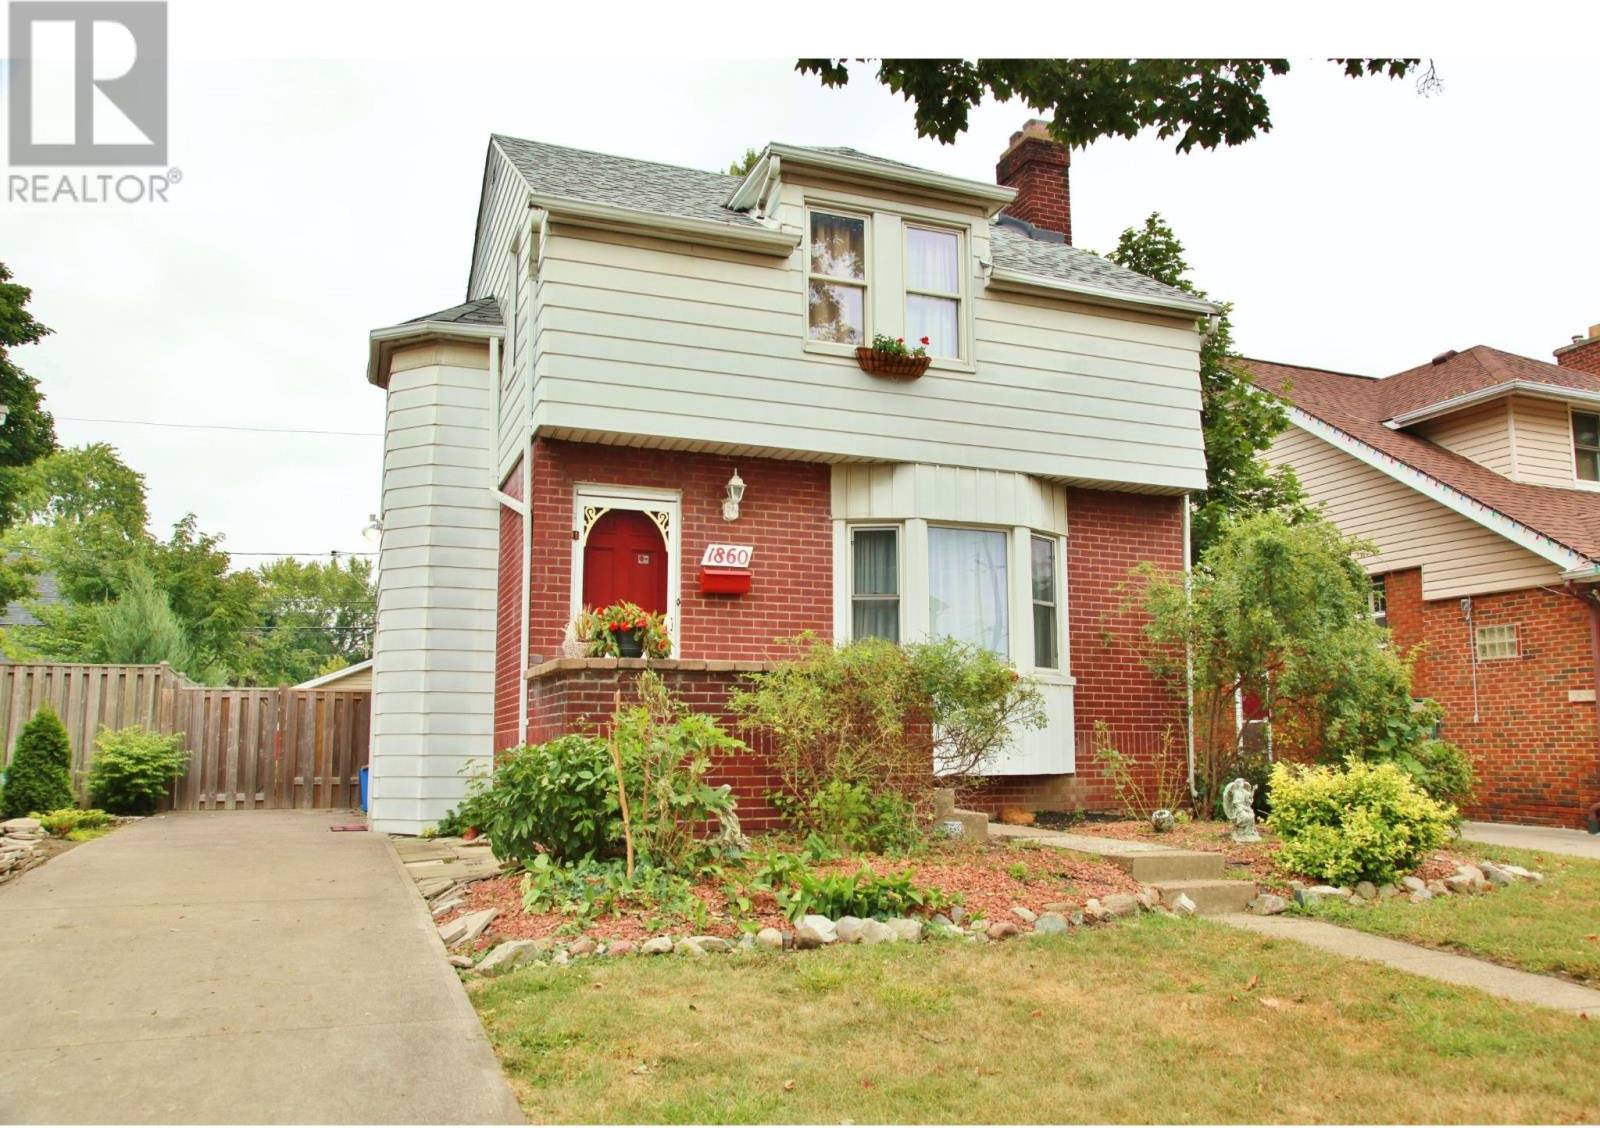 House for sale at 1860 Chilver  Windsor Ontario - MLS: 19023532